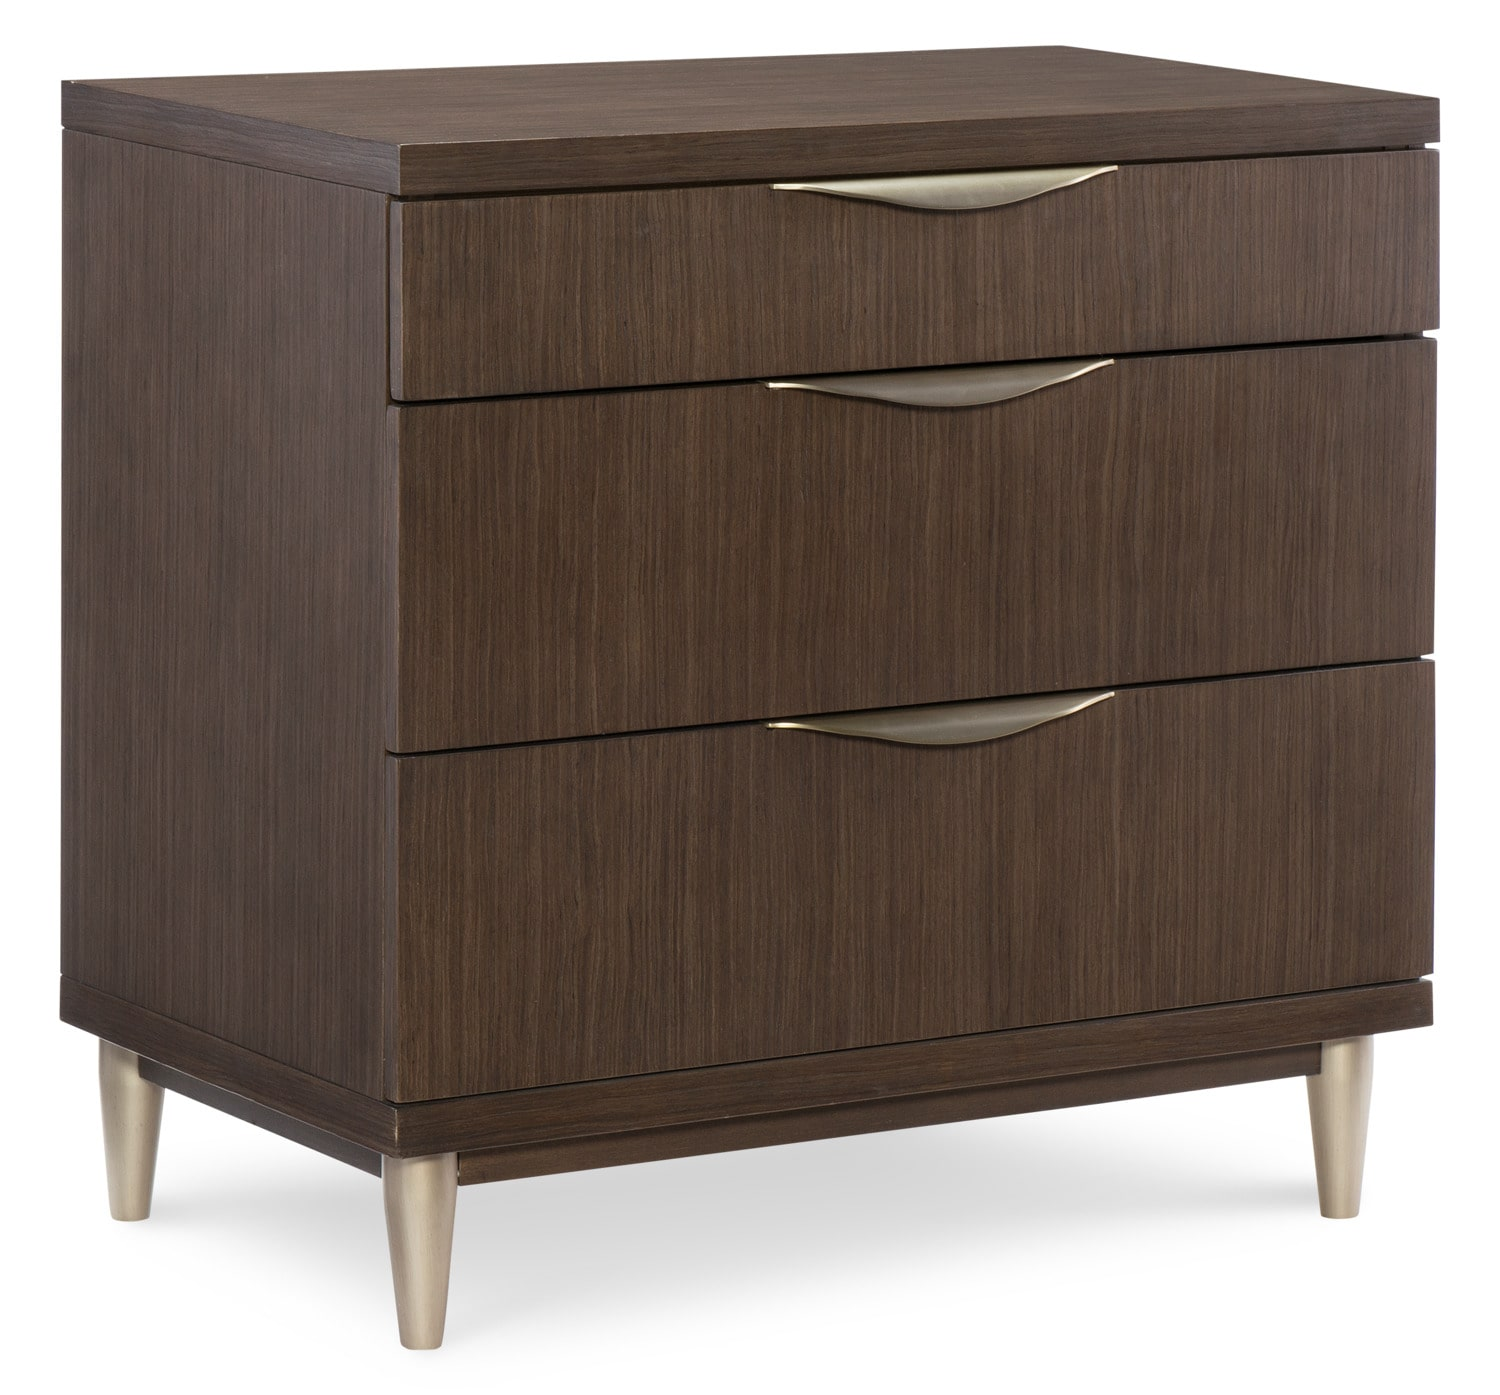 Rachael Ray Soho 3-Drawer Nightstand - Ash Brown